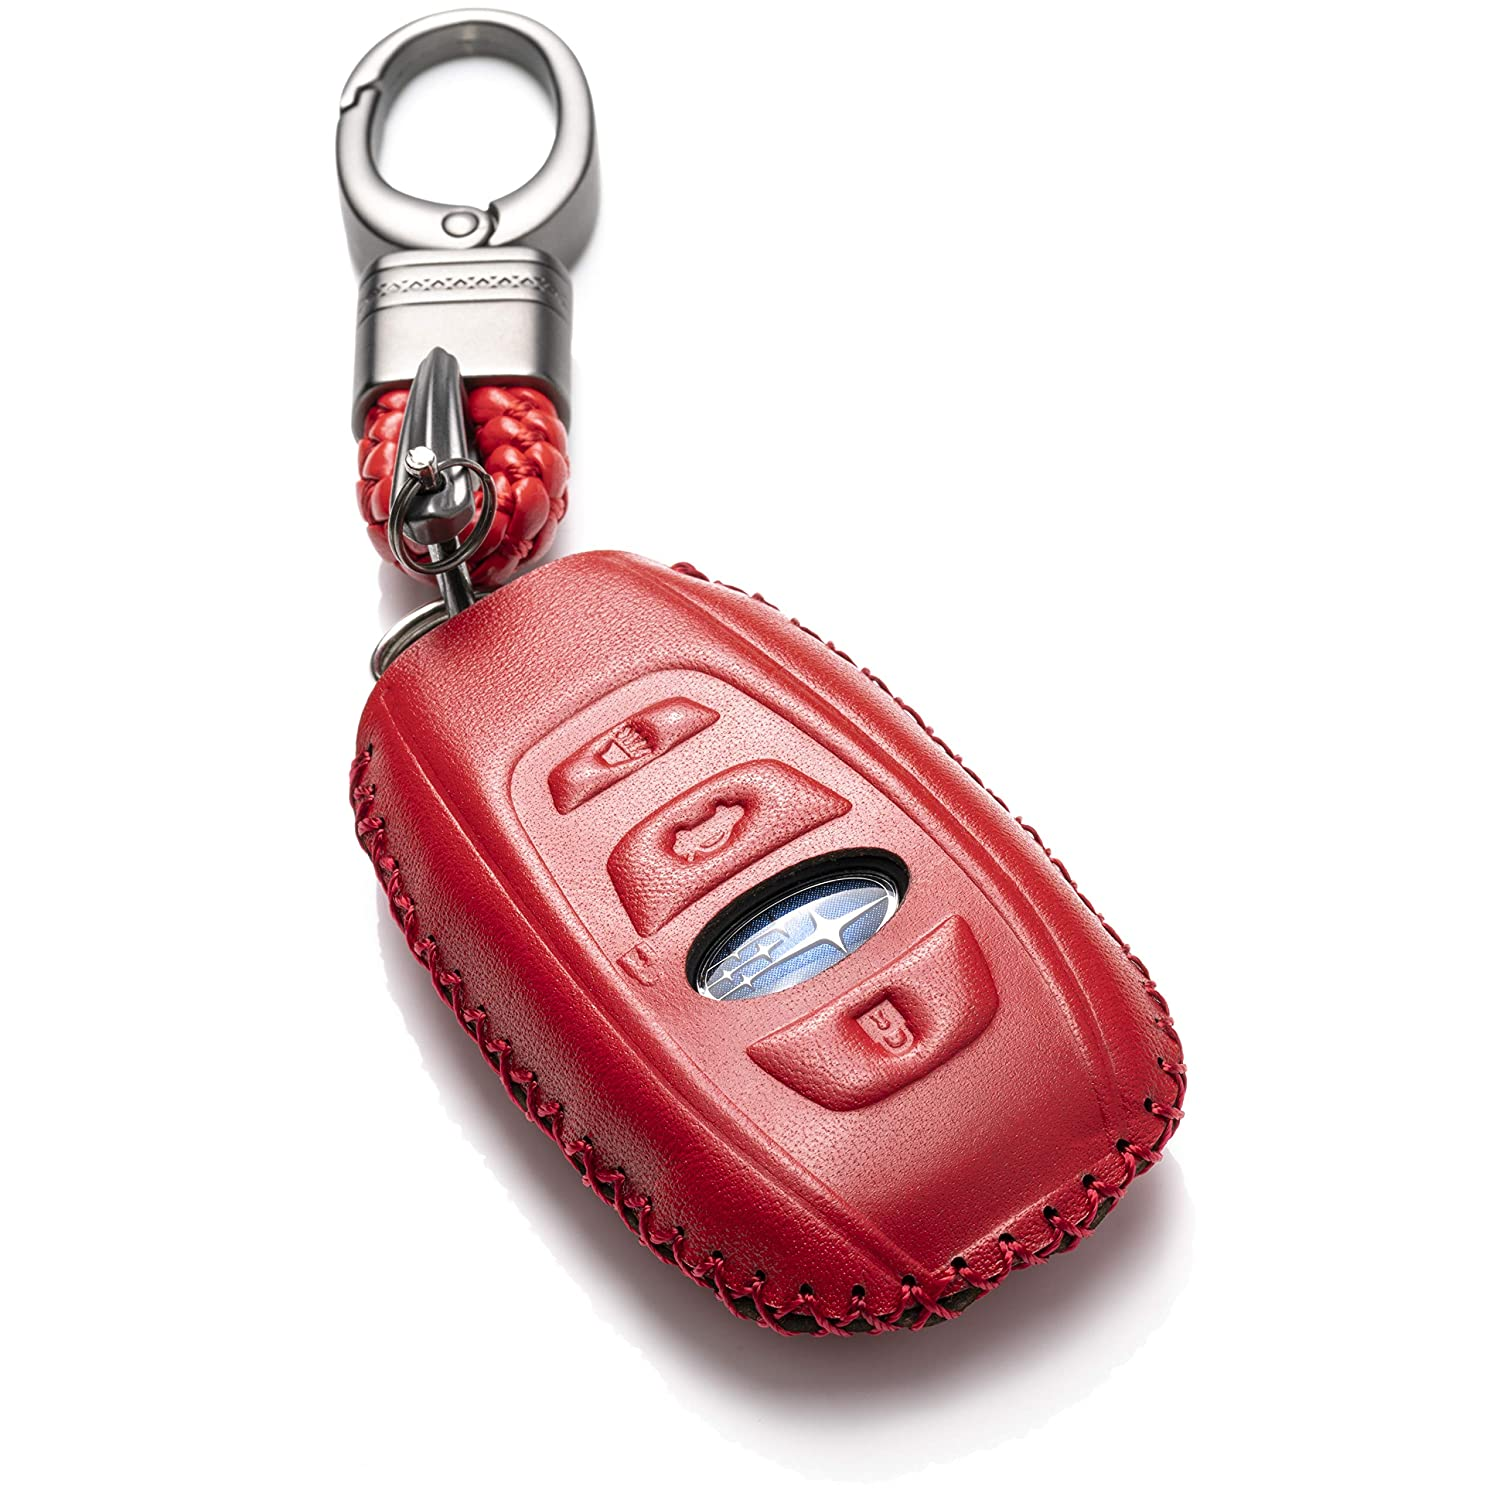 4 Buttons, Black//Red Outback Vitodeco Subaru Leather Keyless Entry Remote Control Smart Key Case Cover with a Key Chain for Subaru Forester XV Crosstrek Impreza WRX BRZ